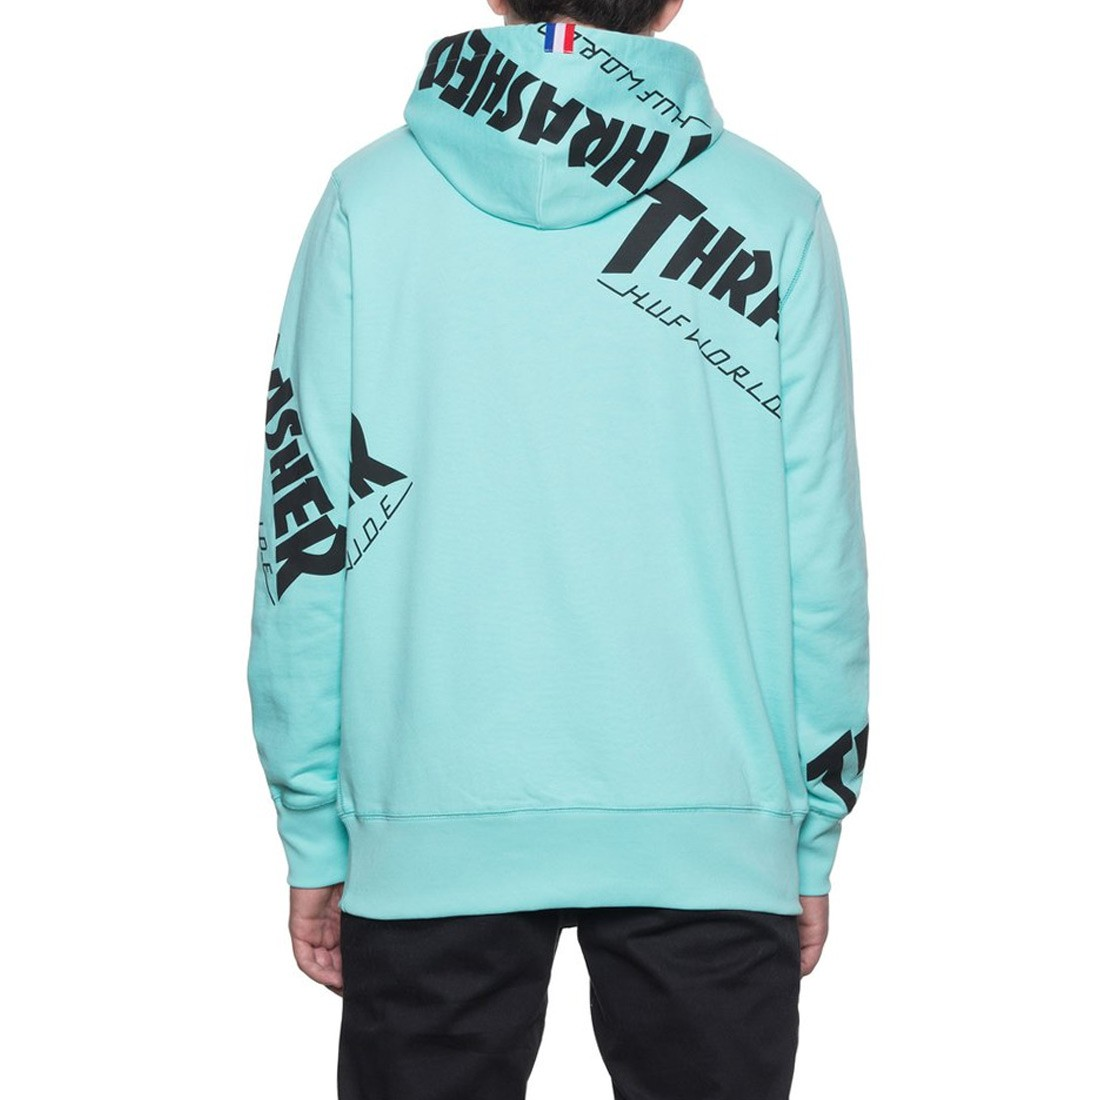 Huf X Thrasher Tour De Stoops All Over Hoodie Mint